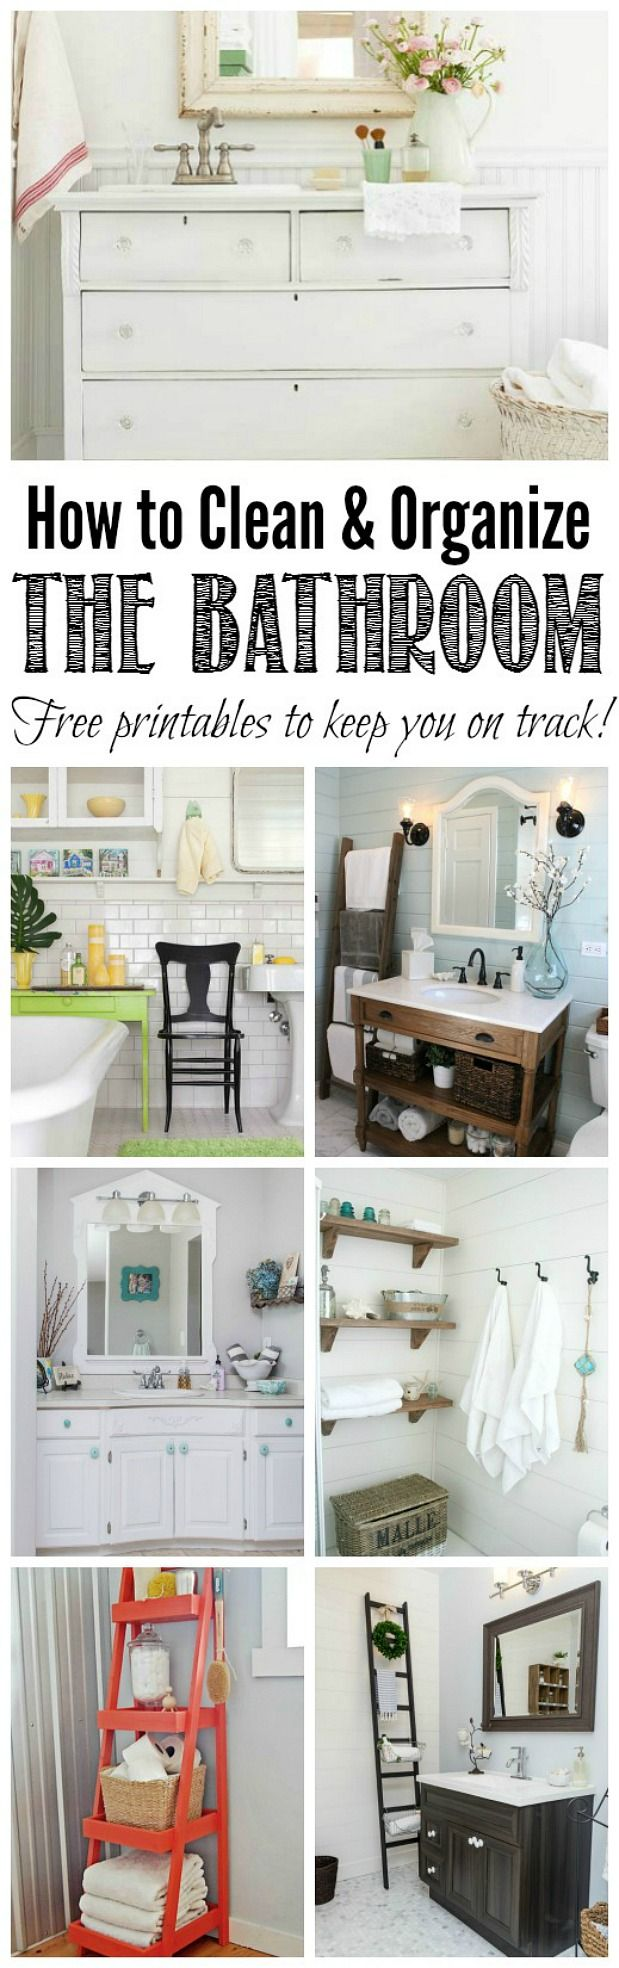 456 best creative organization ideas images on pinterest bathroom cleaning and organization ideas